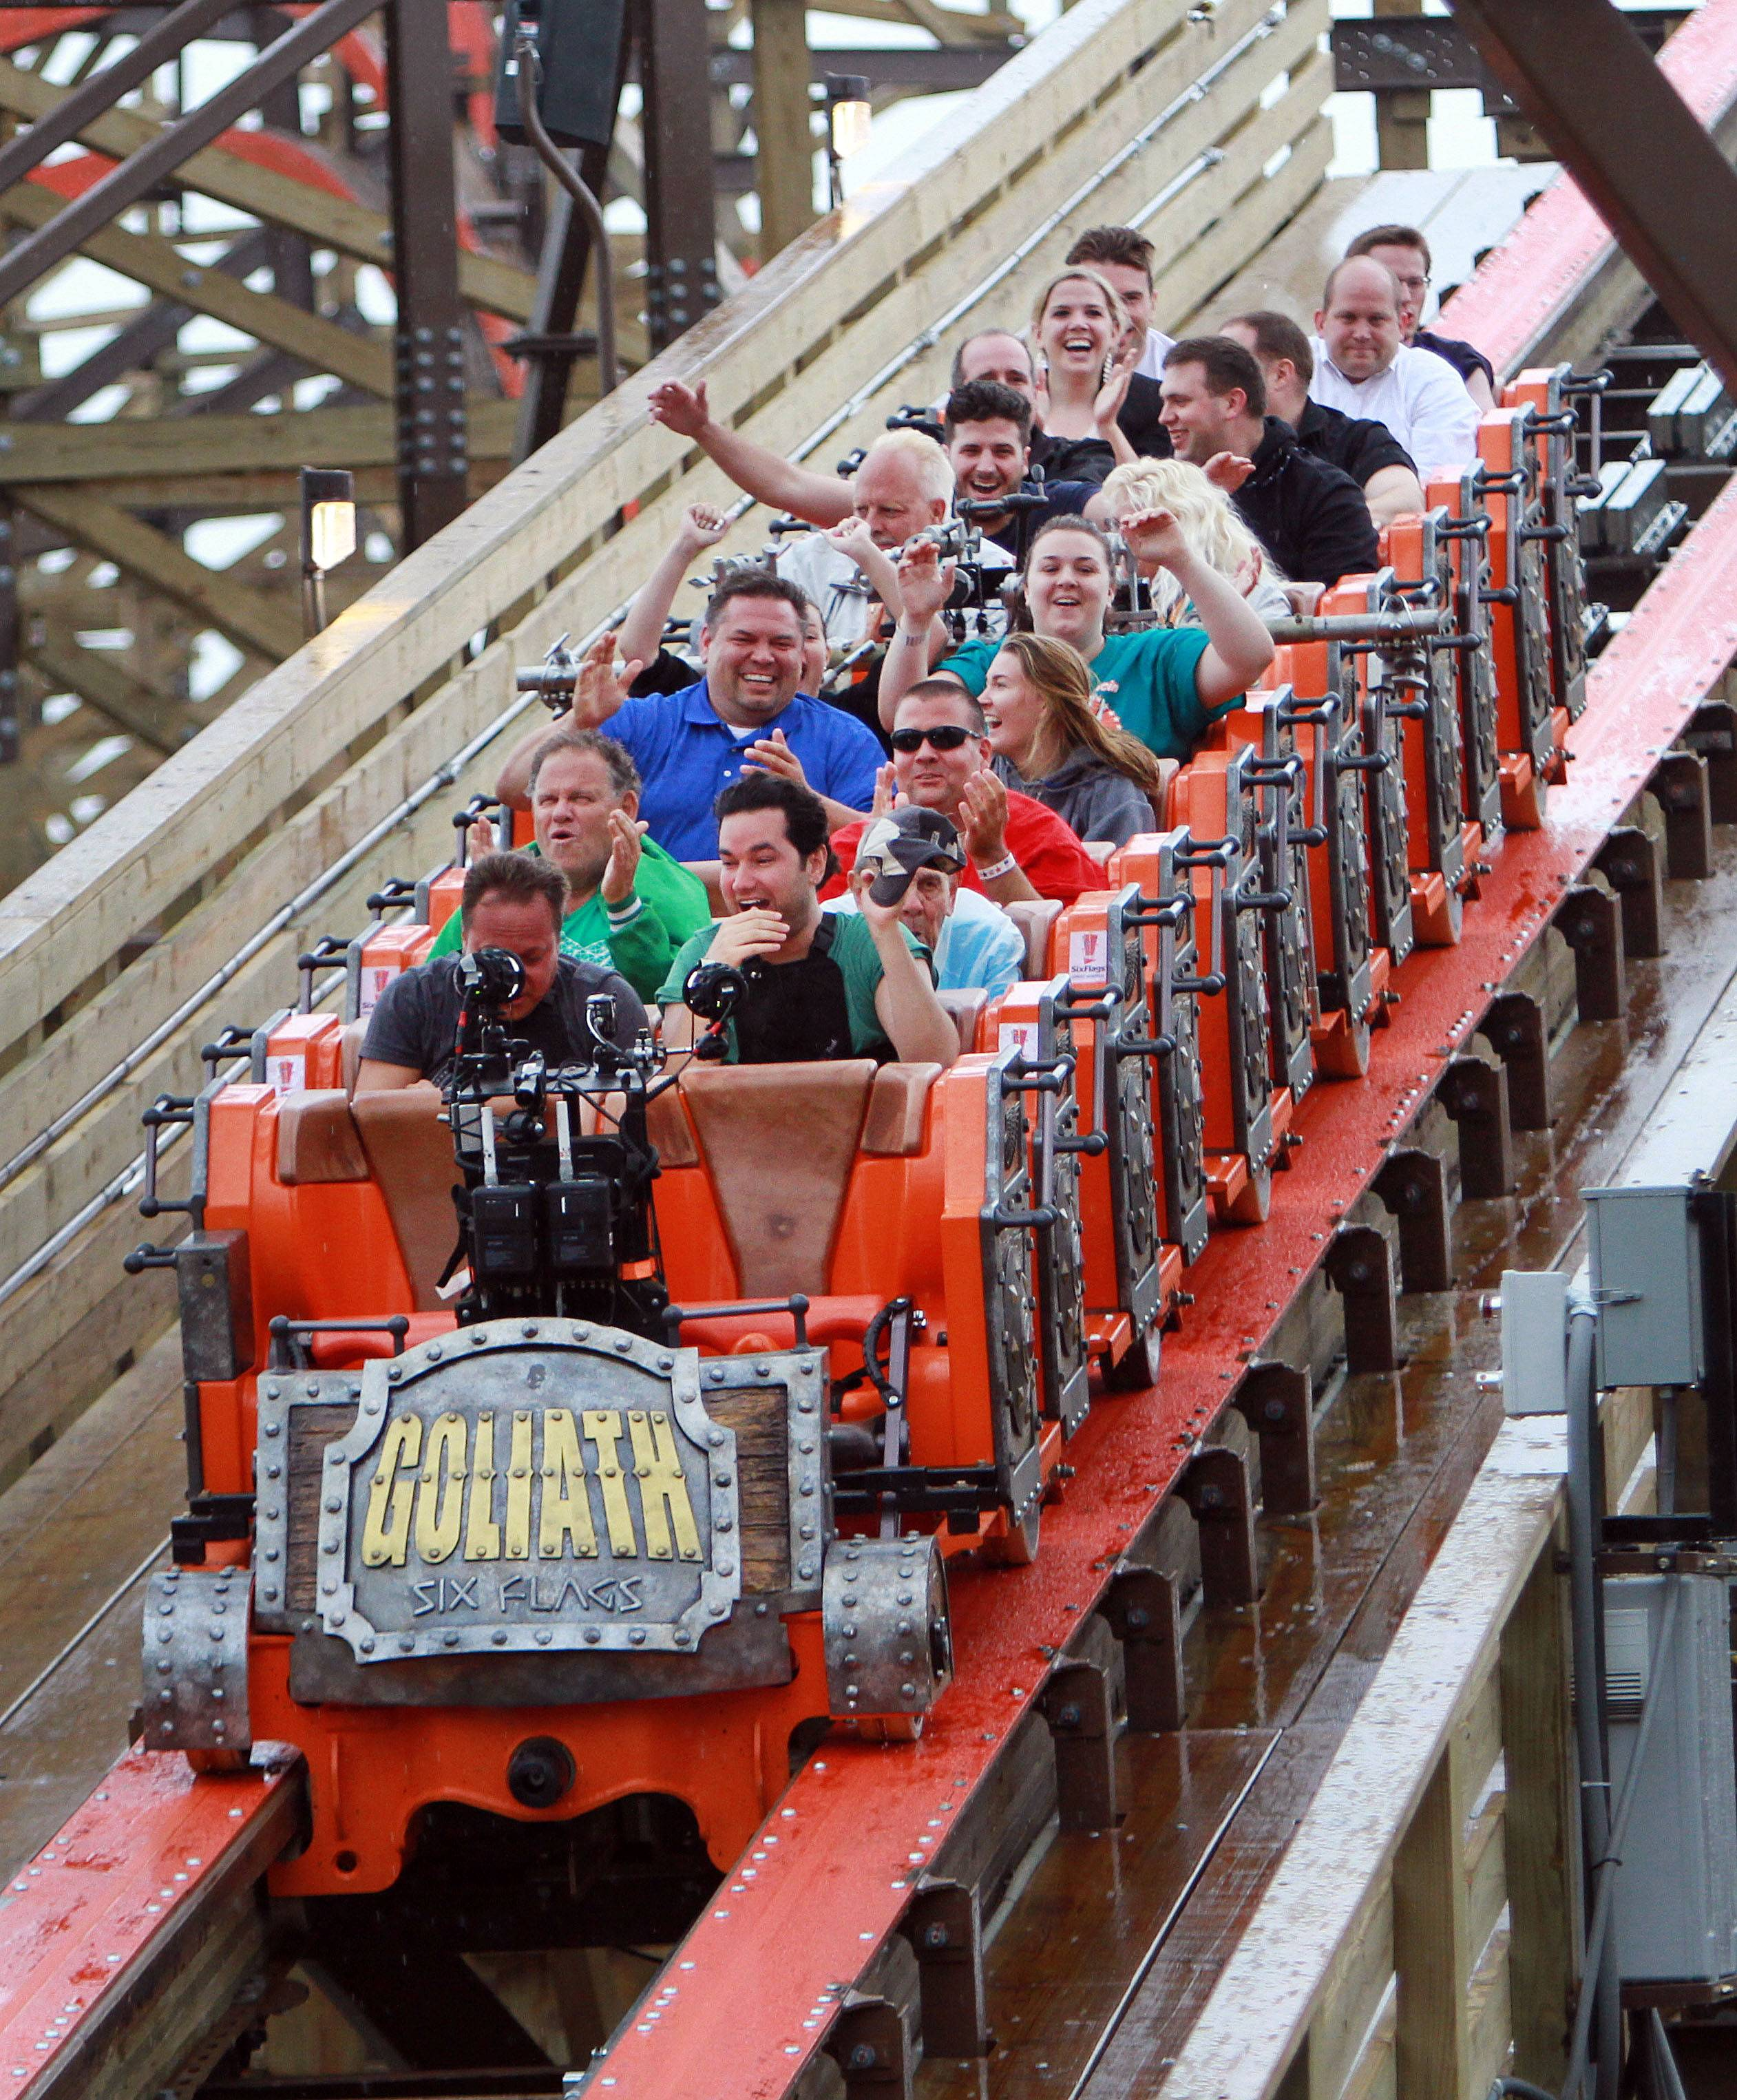 Steve Lundy/slundy@dailyherald.comRiders look excited after experiencing the new wooden roller coaster Goliath at Six Flags Great America in Gurnee Wednesday.